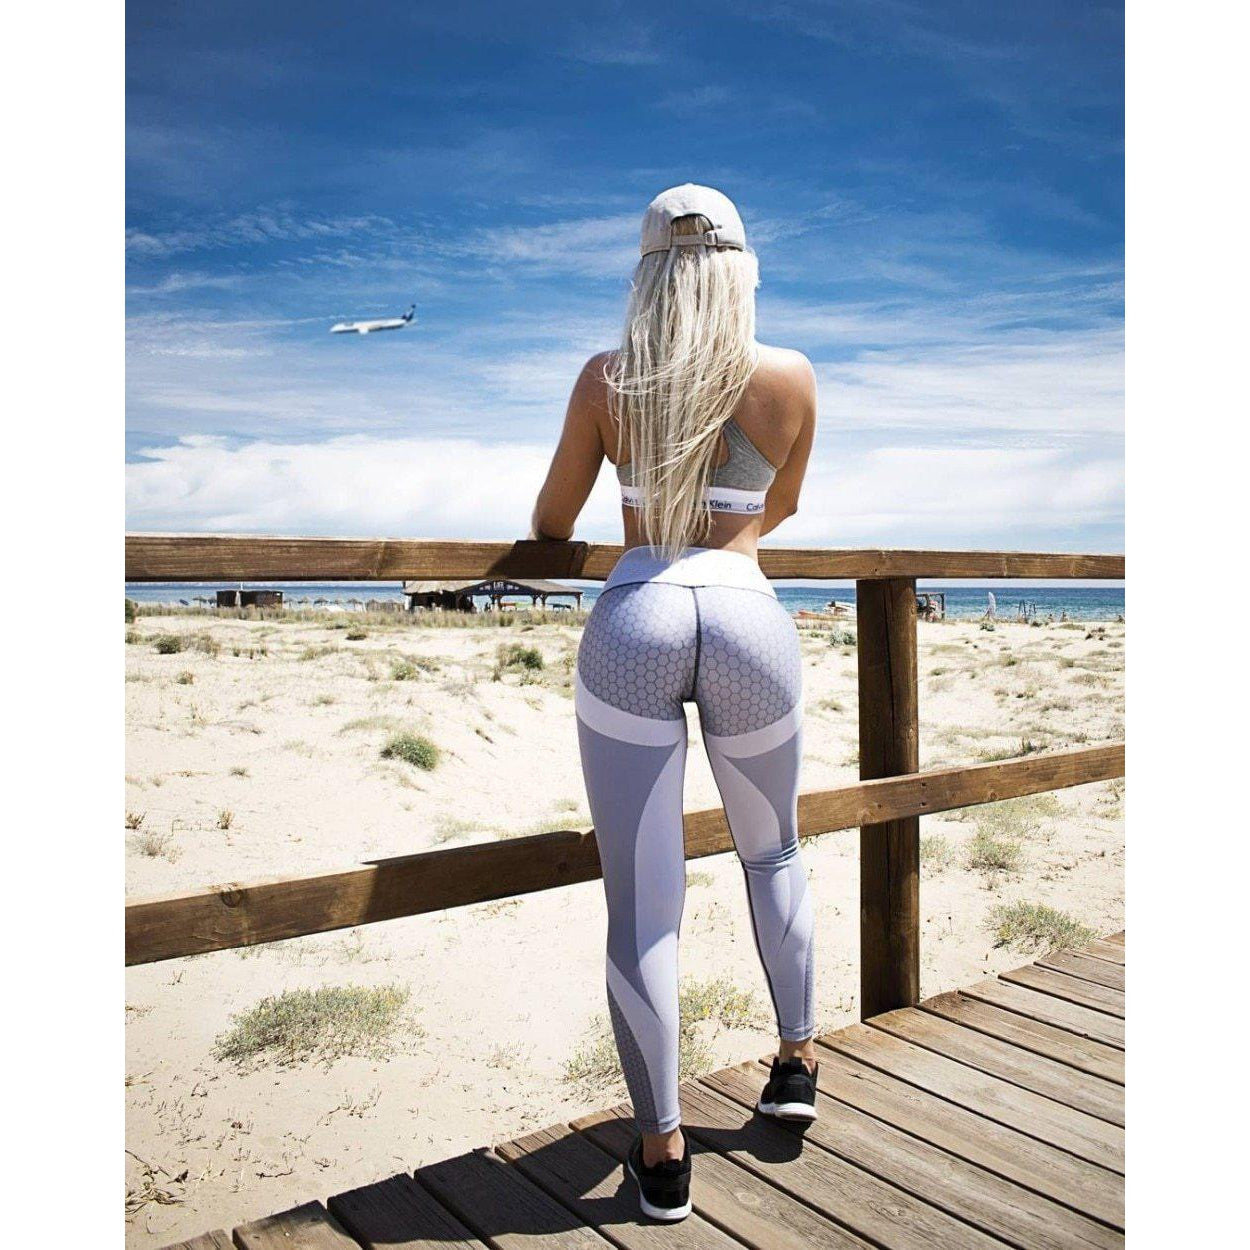 Mesh Print Fitness Sports Workout Jogging Leggings for Women - asheers4u